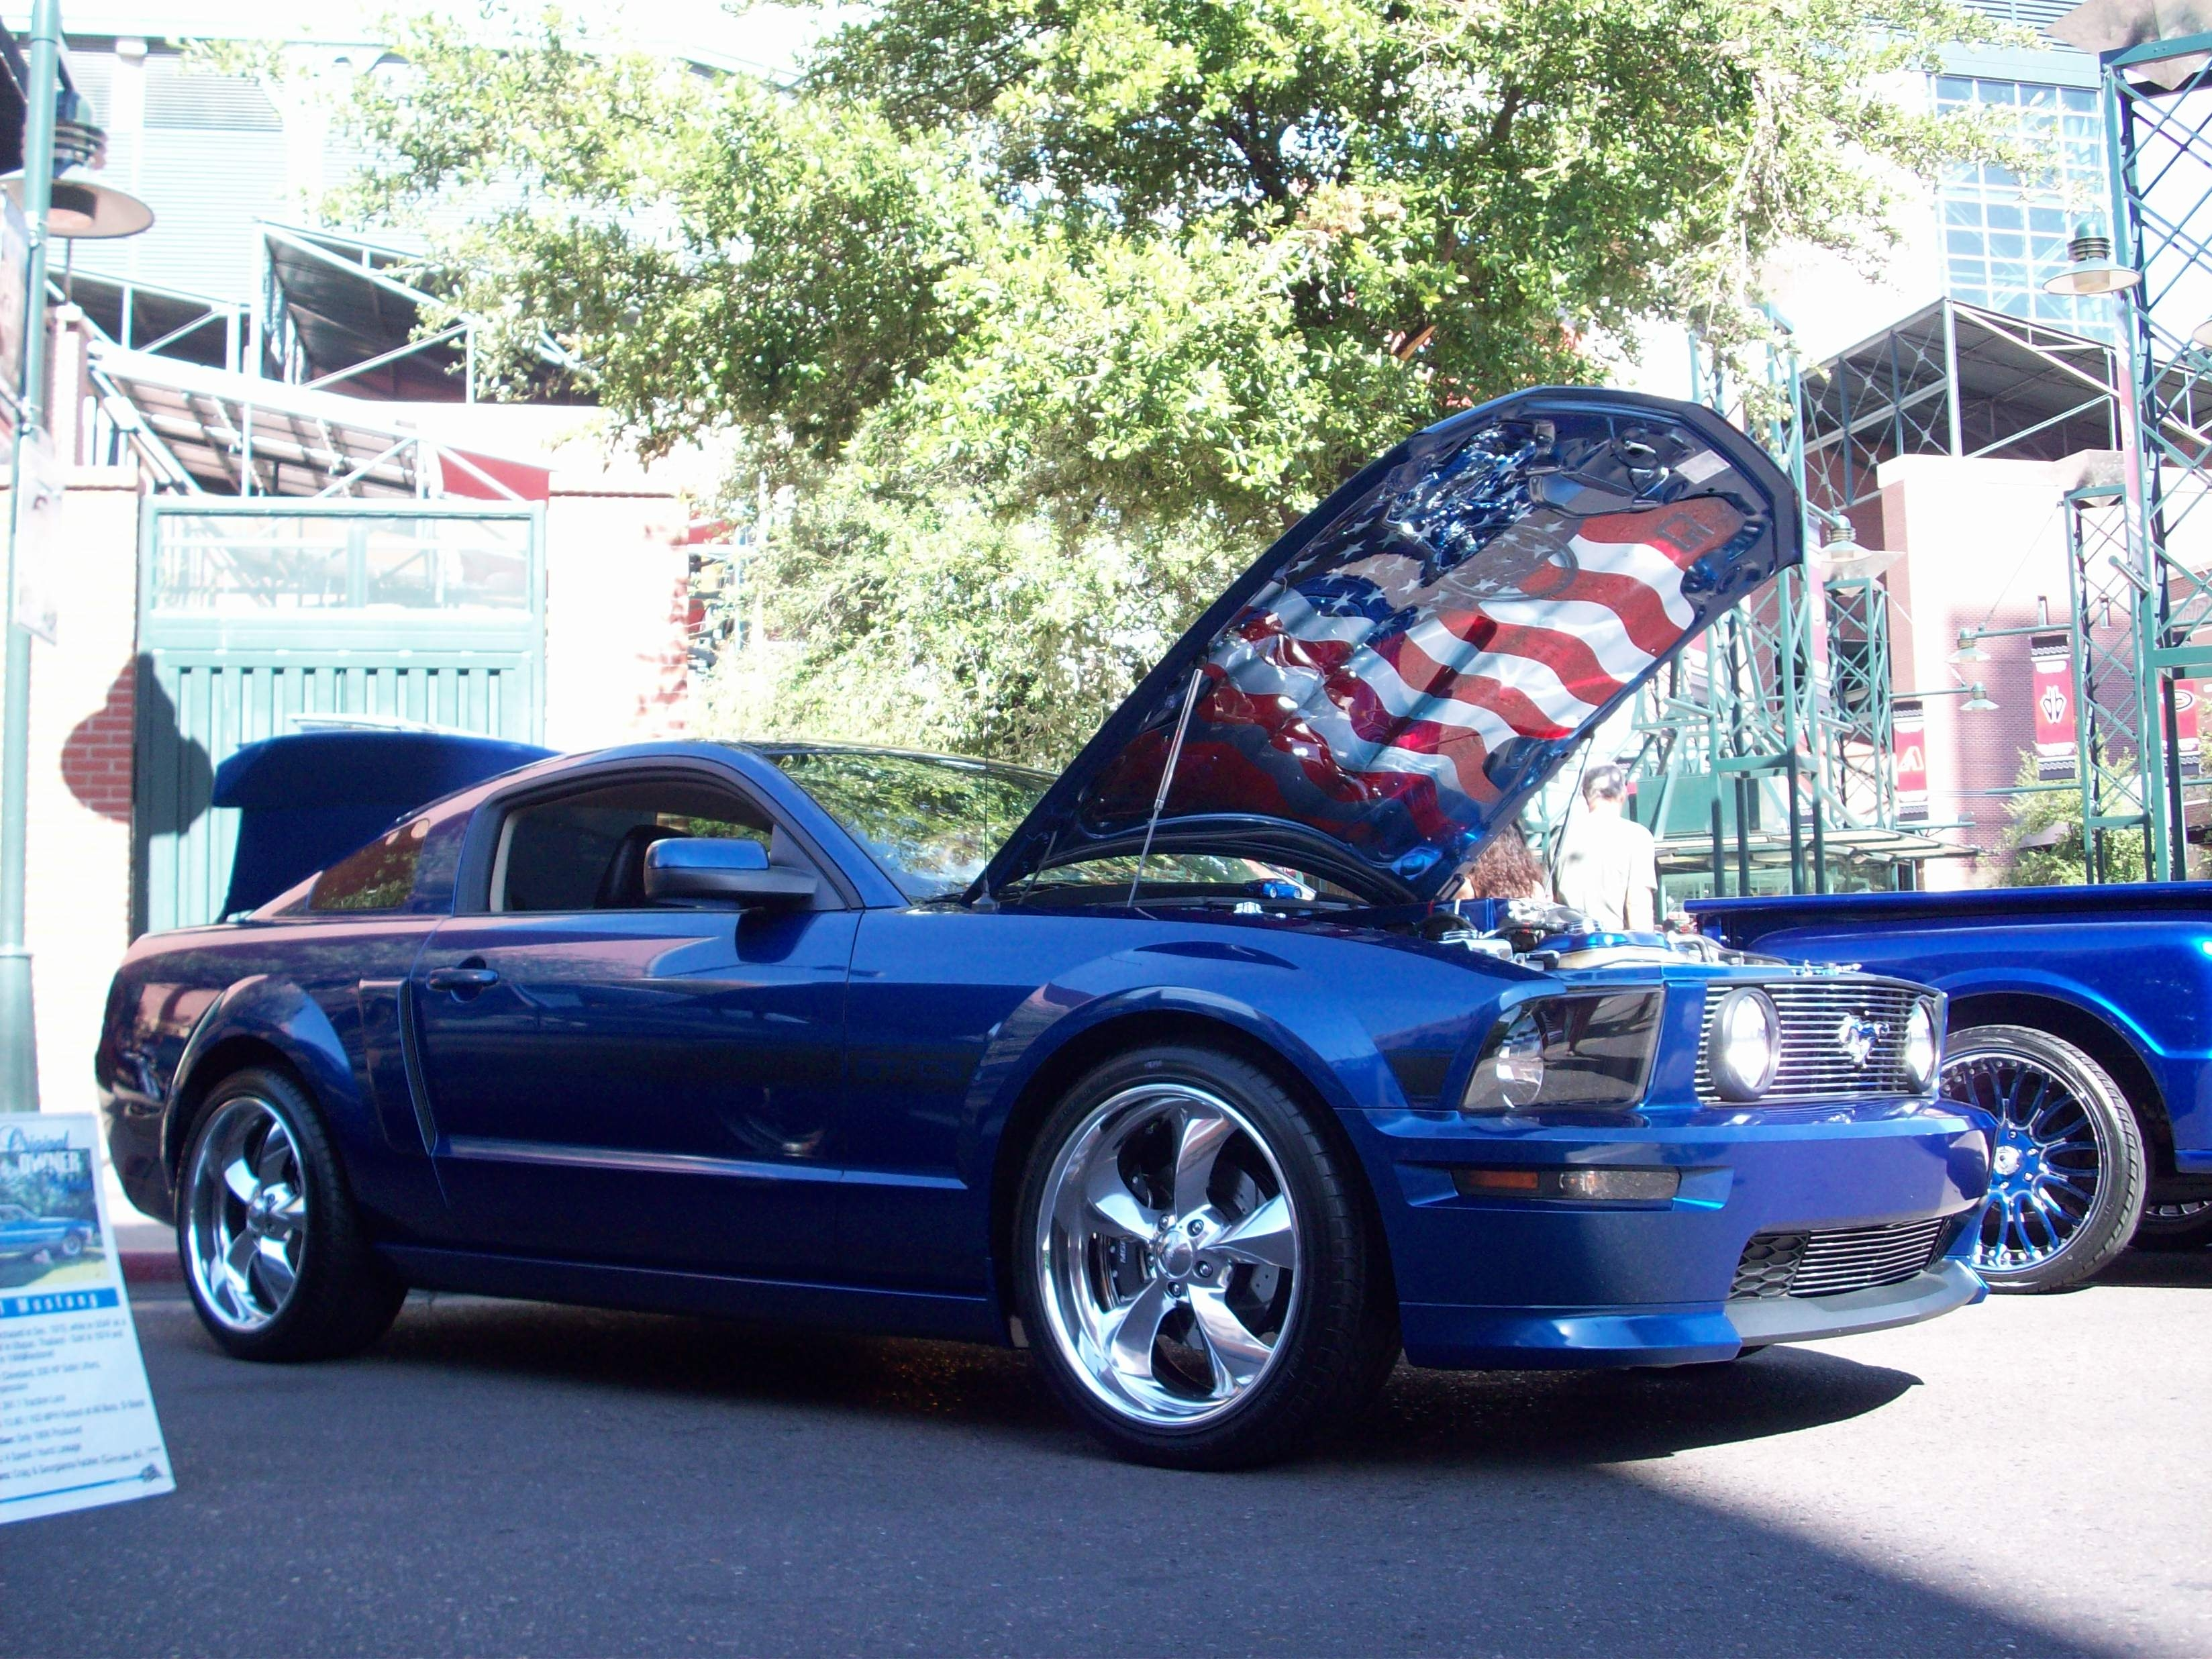 wheeln's 2007 Ford Mustang